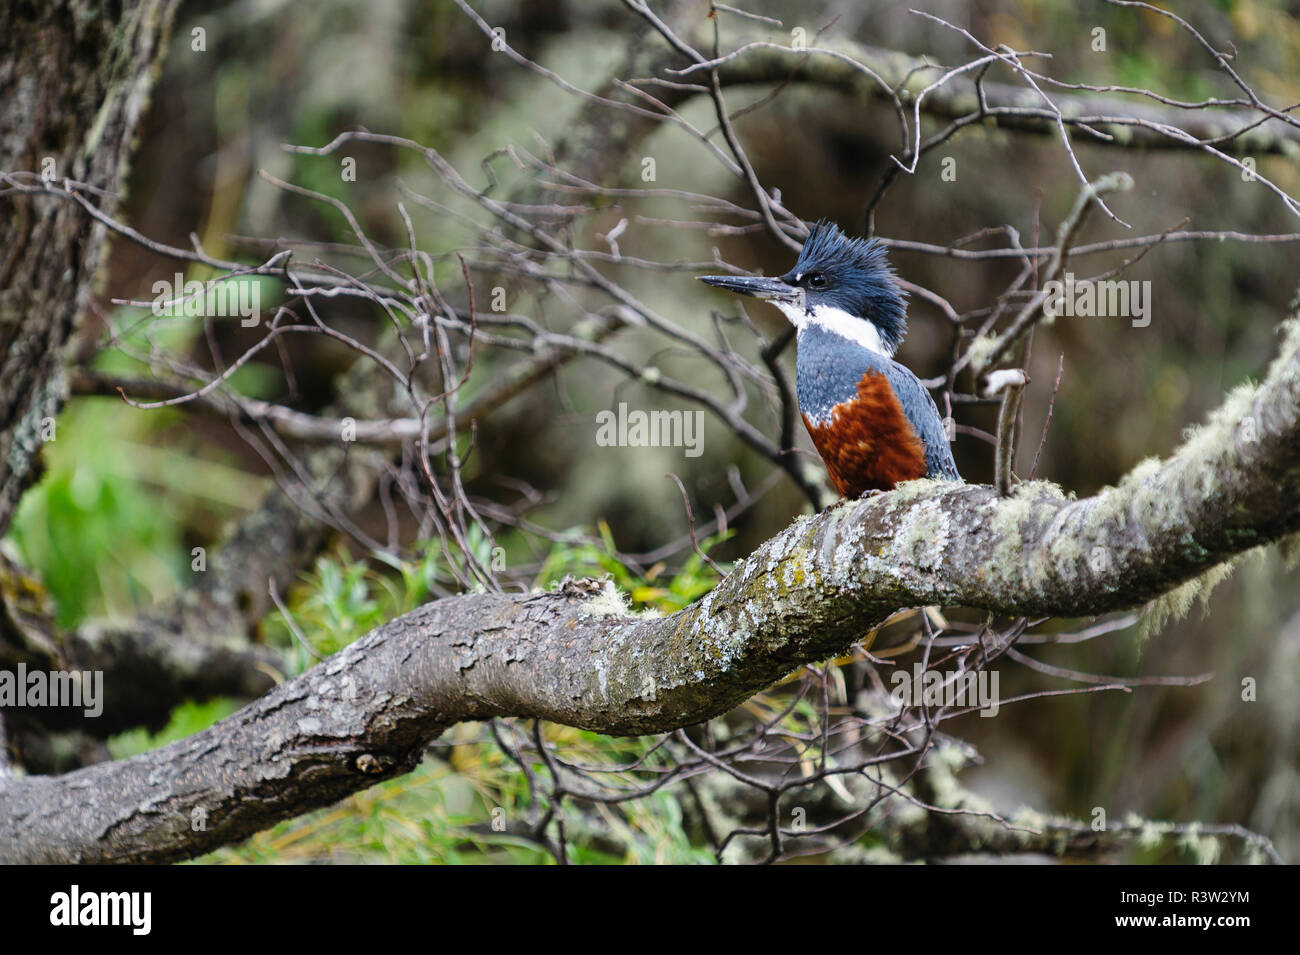 Chile, Aysen. Ringed Kingfisher (Ceryle torquata). - Stock Image